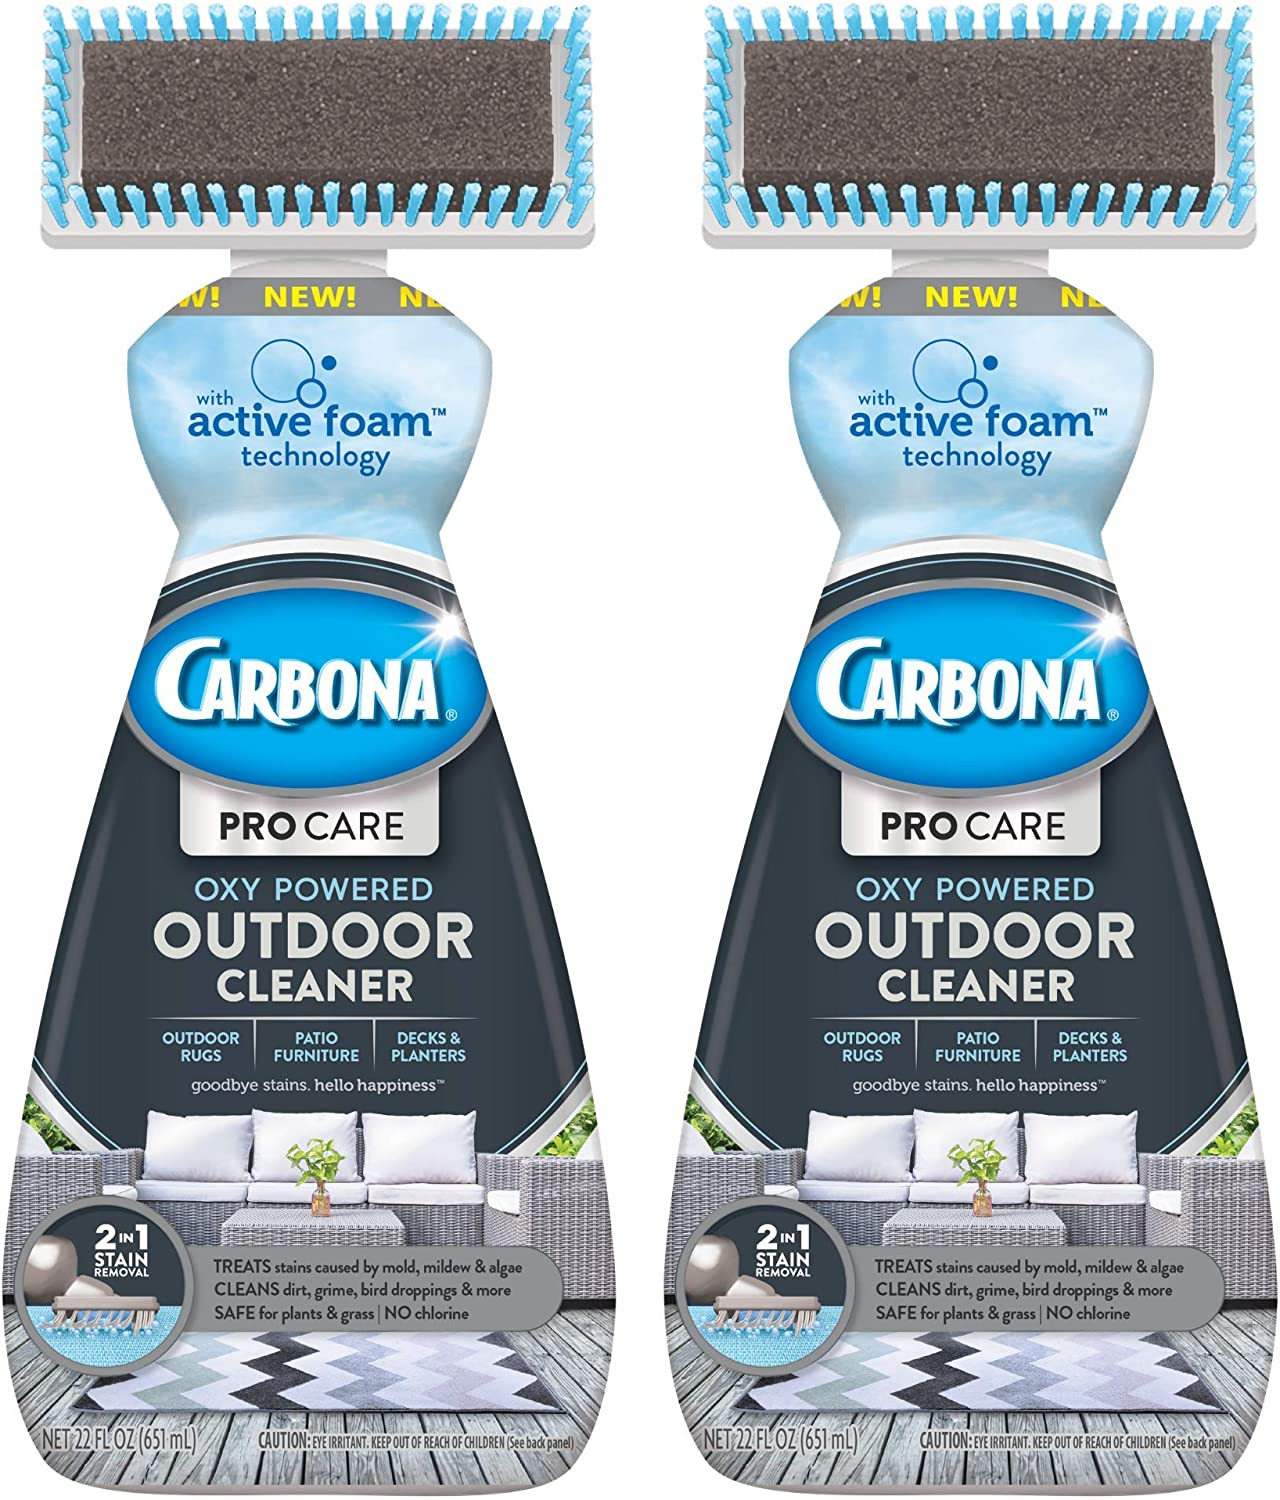 Carbona Pro Care 2-in-1 Oxy Powered Outdoor Cleaner